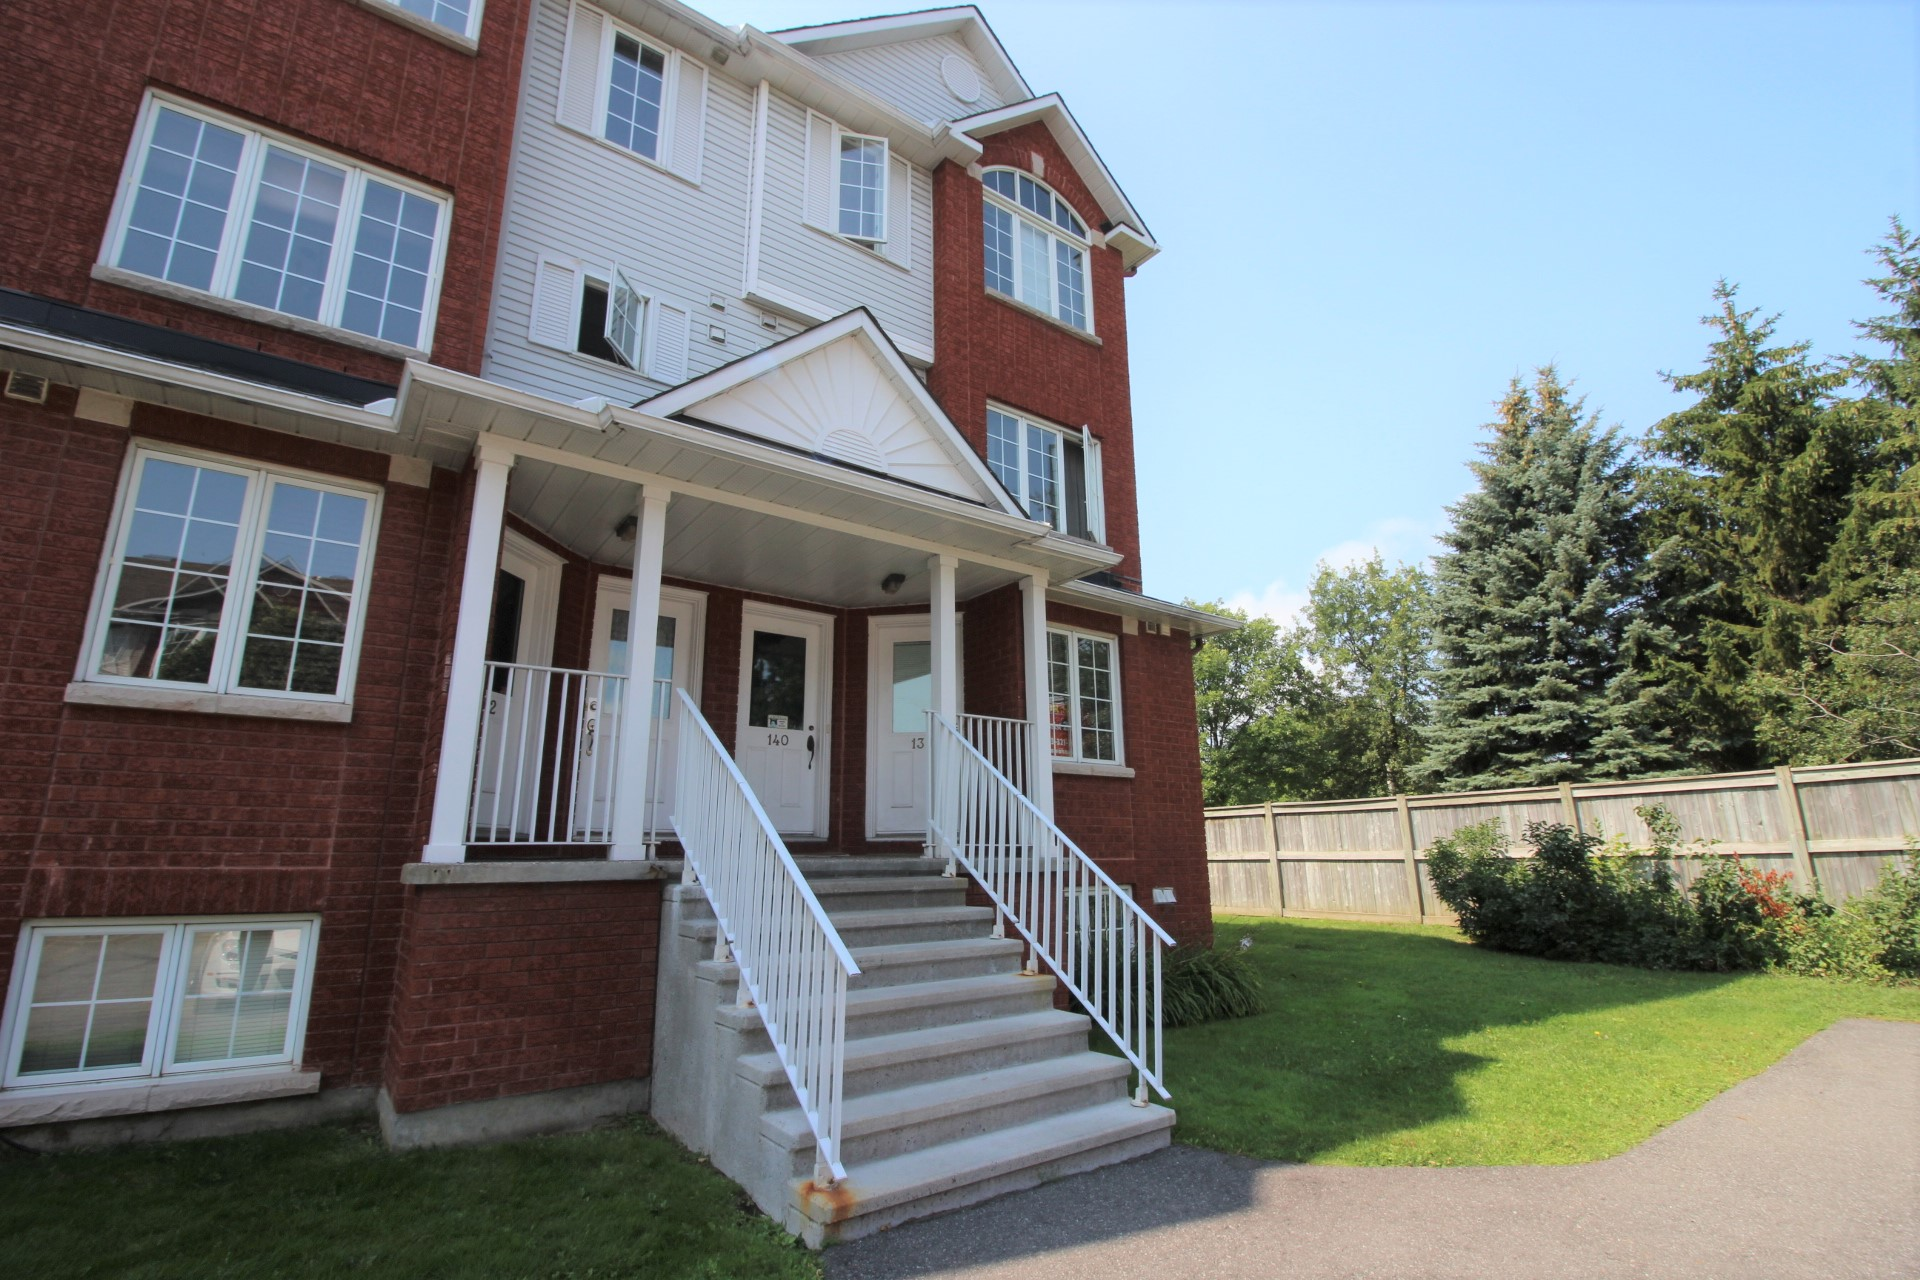 138 Briston Pvt - Beautiful 2 Bedroom End Unit Condo in popular Hunt Club Park